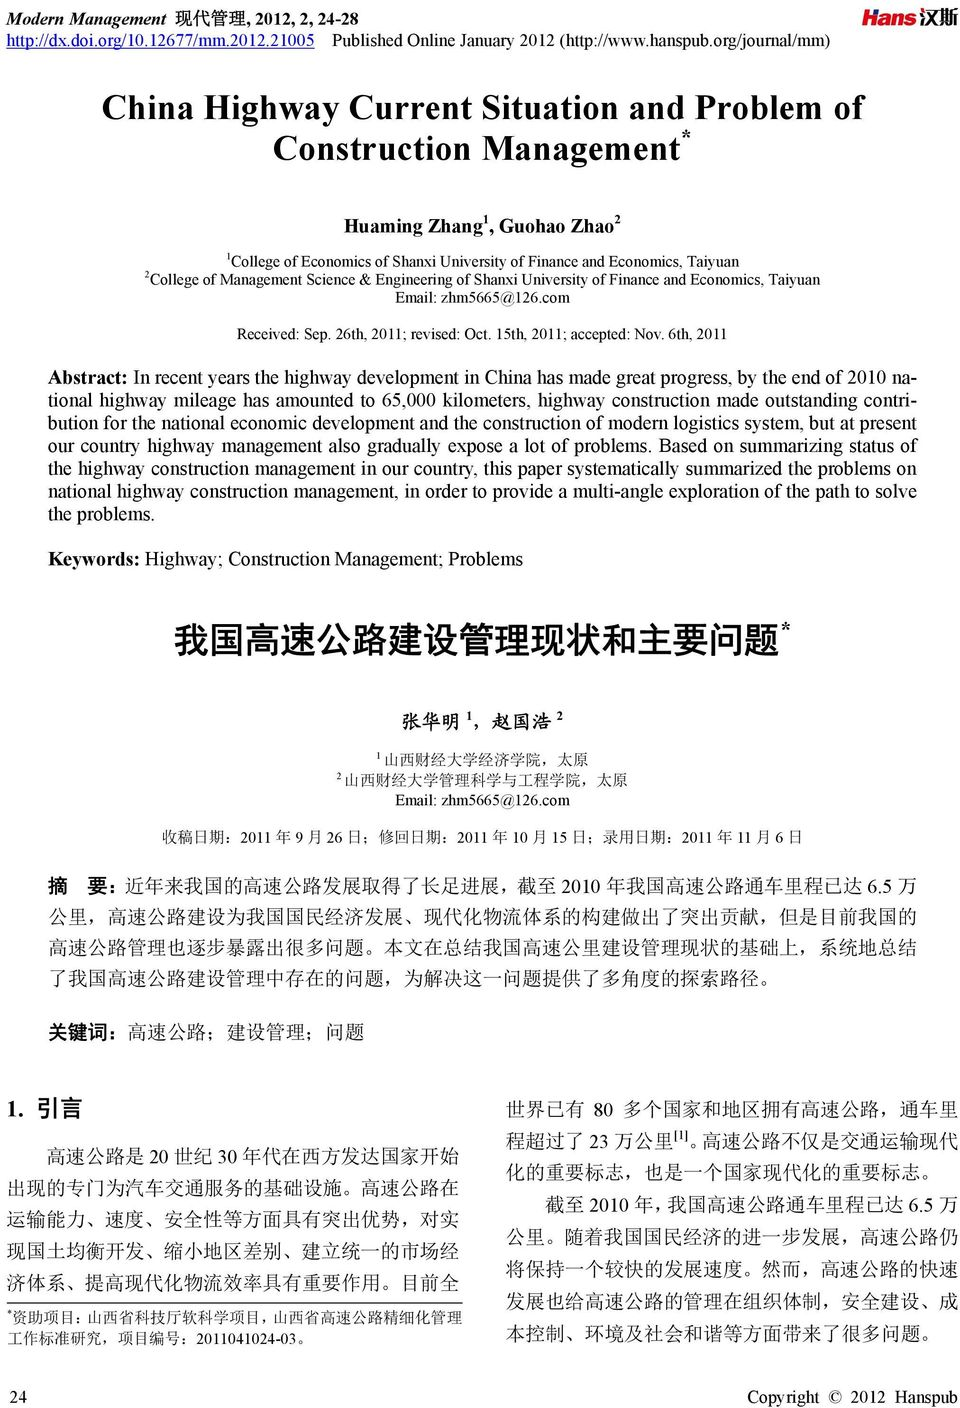 College of Management Science & Engineering of Shanxi University of Finance and Economics, Taiyuan Email: zhm5665@126.com Received: Sep. 26th, 2011; revised: Oct. 15th, 2011; accepted: Nov.